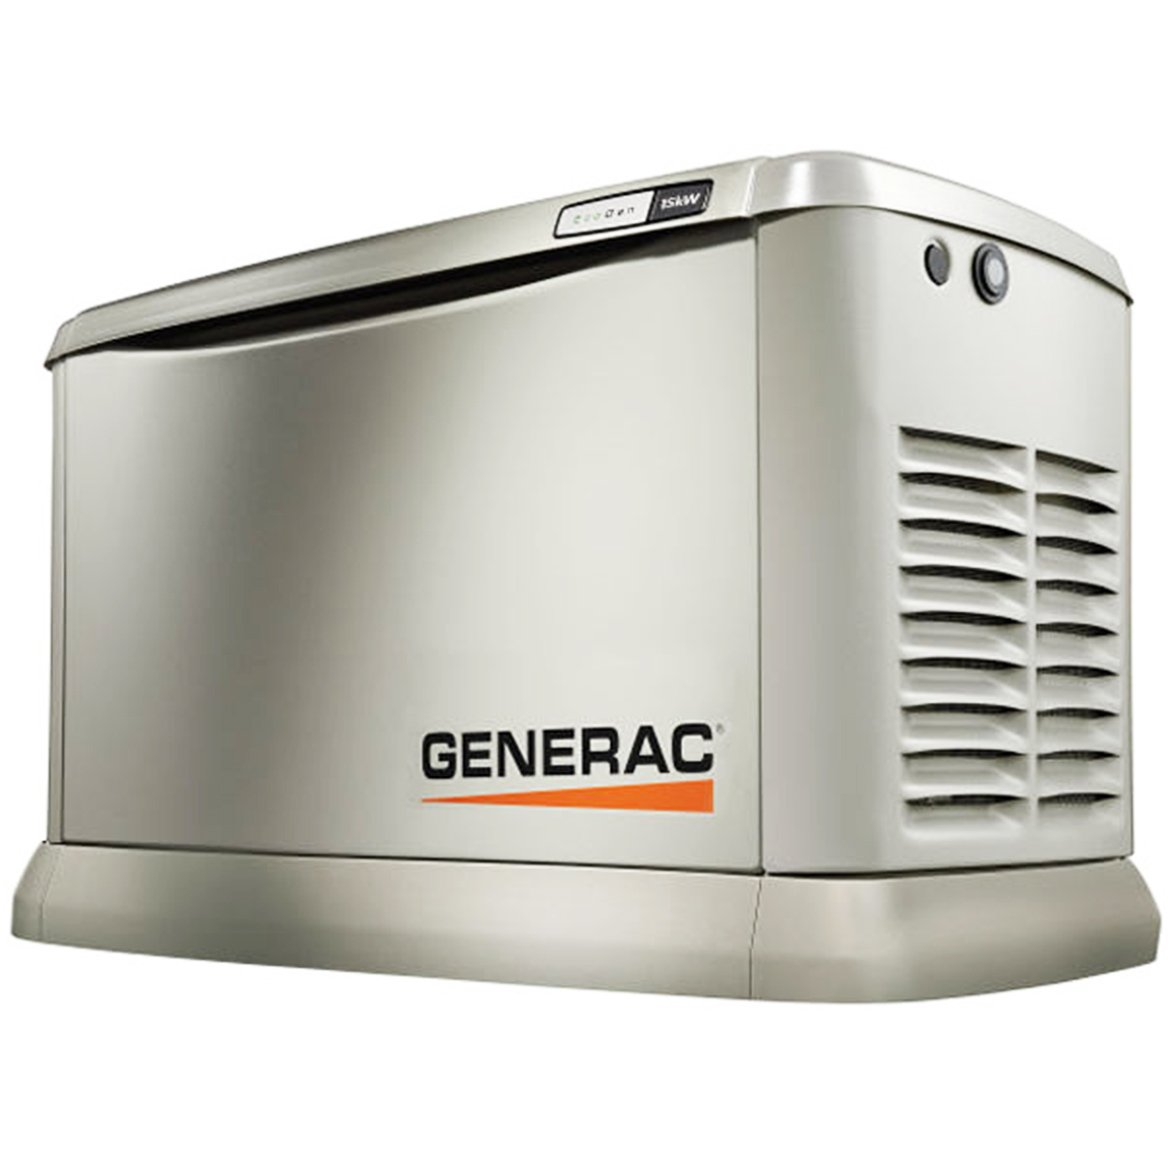 Amazon.com : Generac 7034 EcoGen Synergy 15kW Variable Speed Air Cooled  Home Standby Generator : Garden & Outdoor